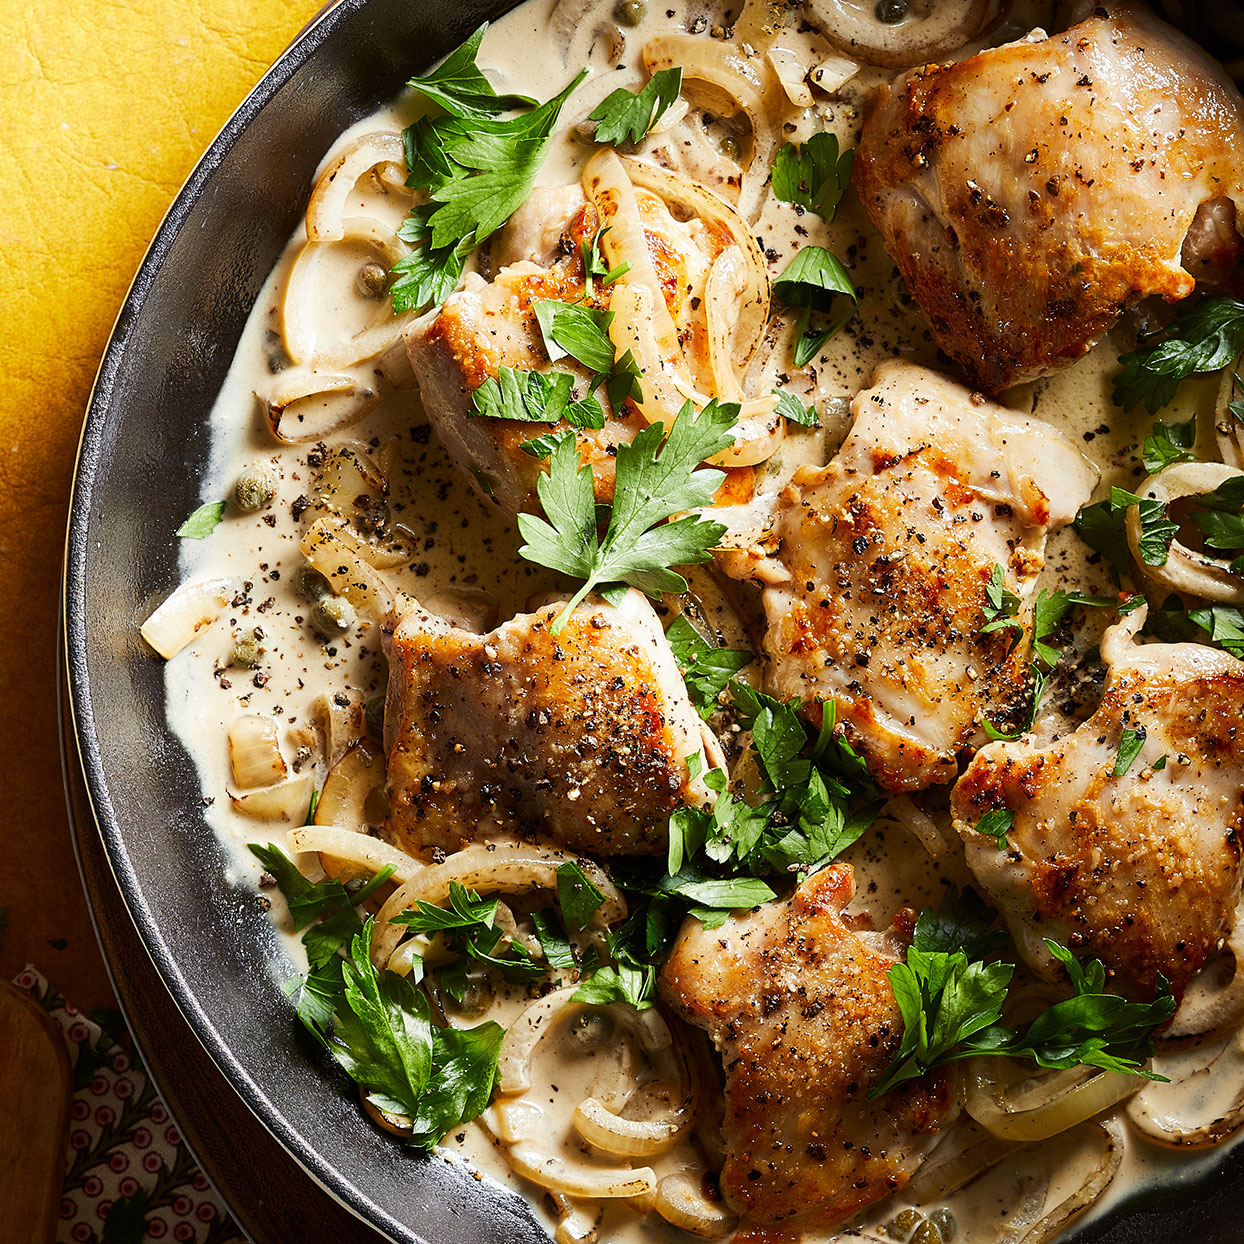 20-Minute Creamy Mustard Chicken Thighs